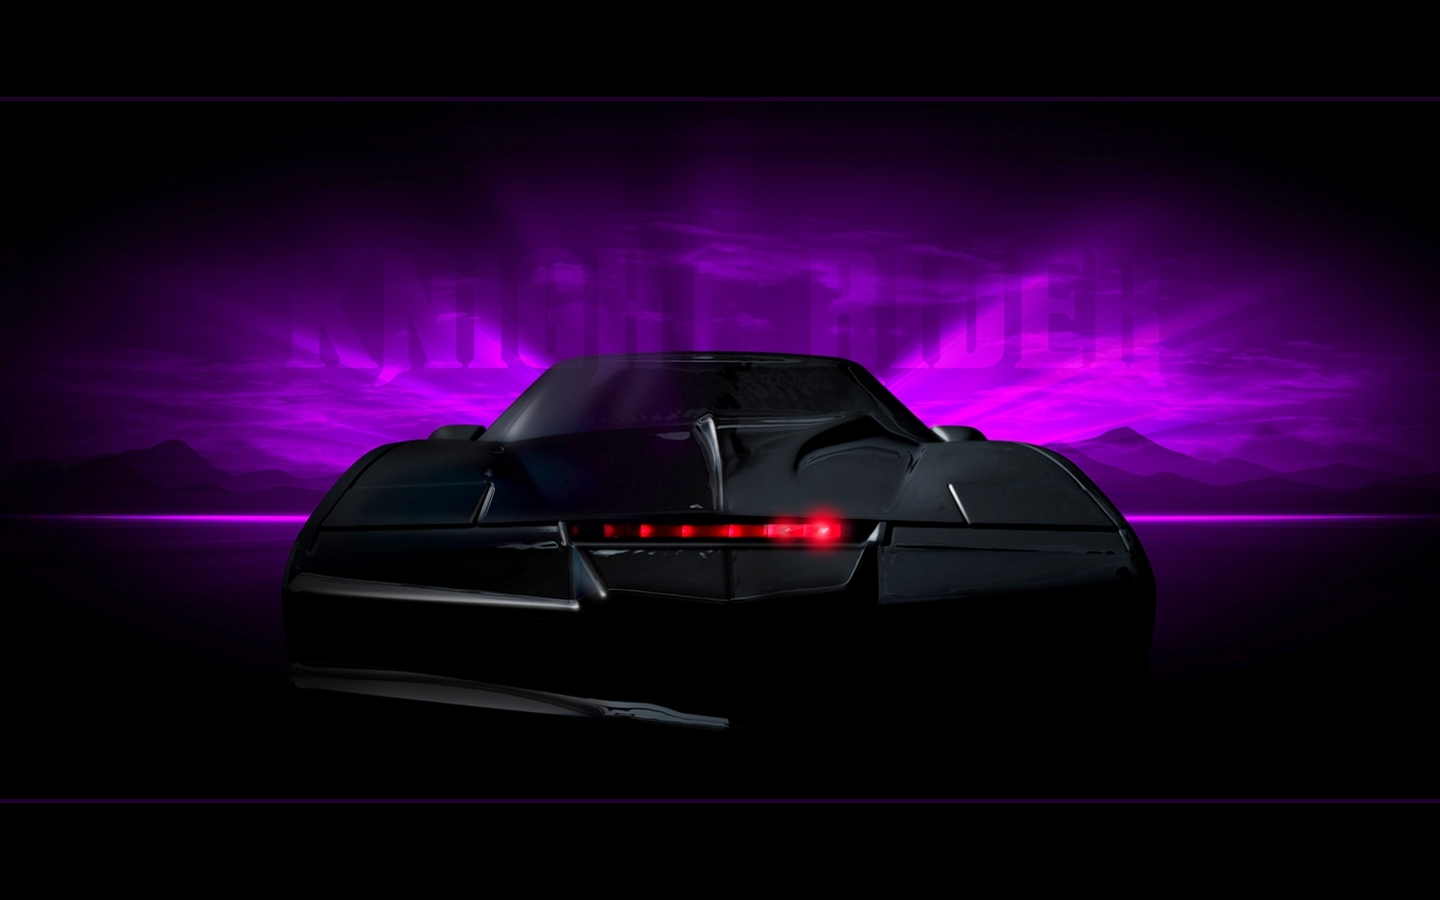 Related Pictures knight rider kitt wallpaper 1440x900